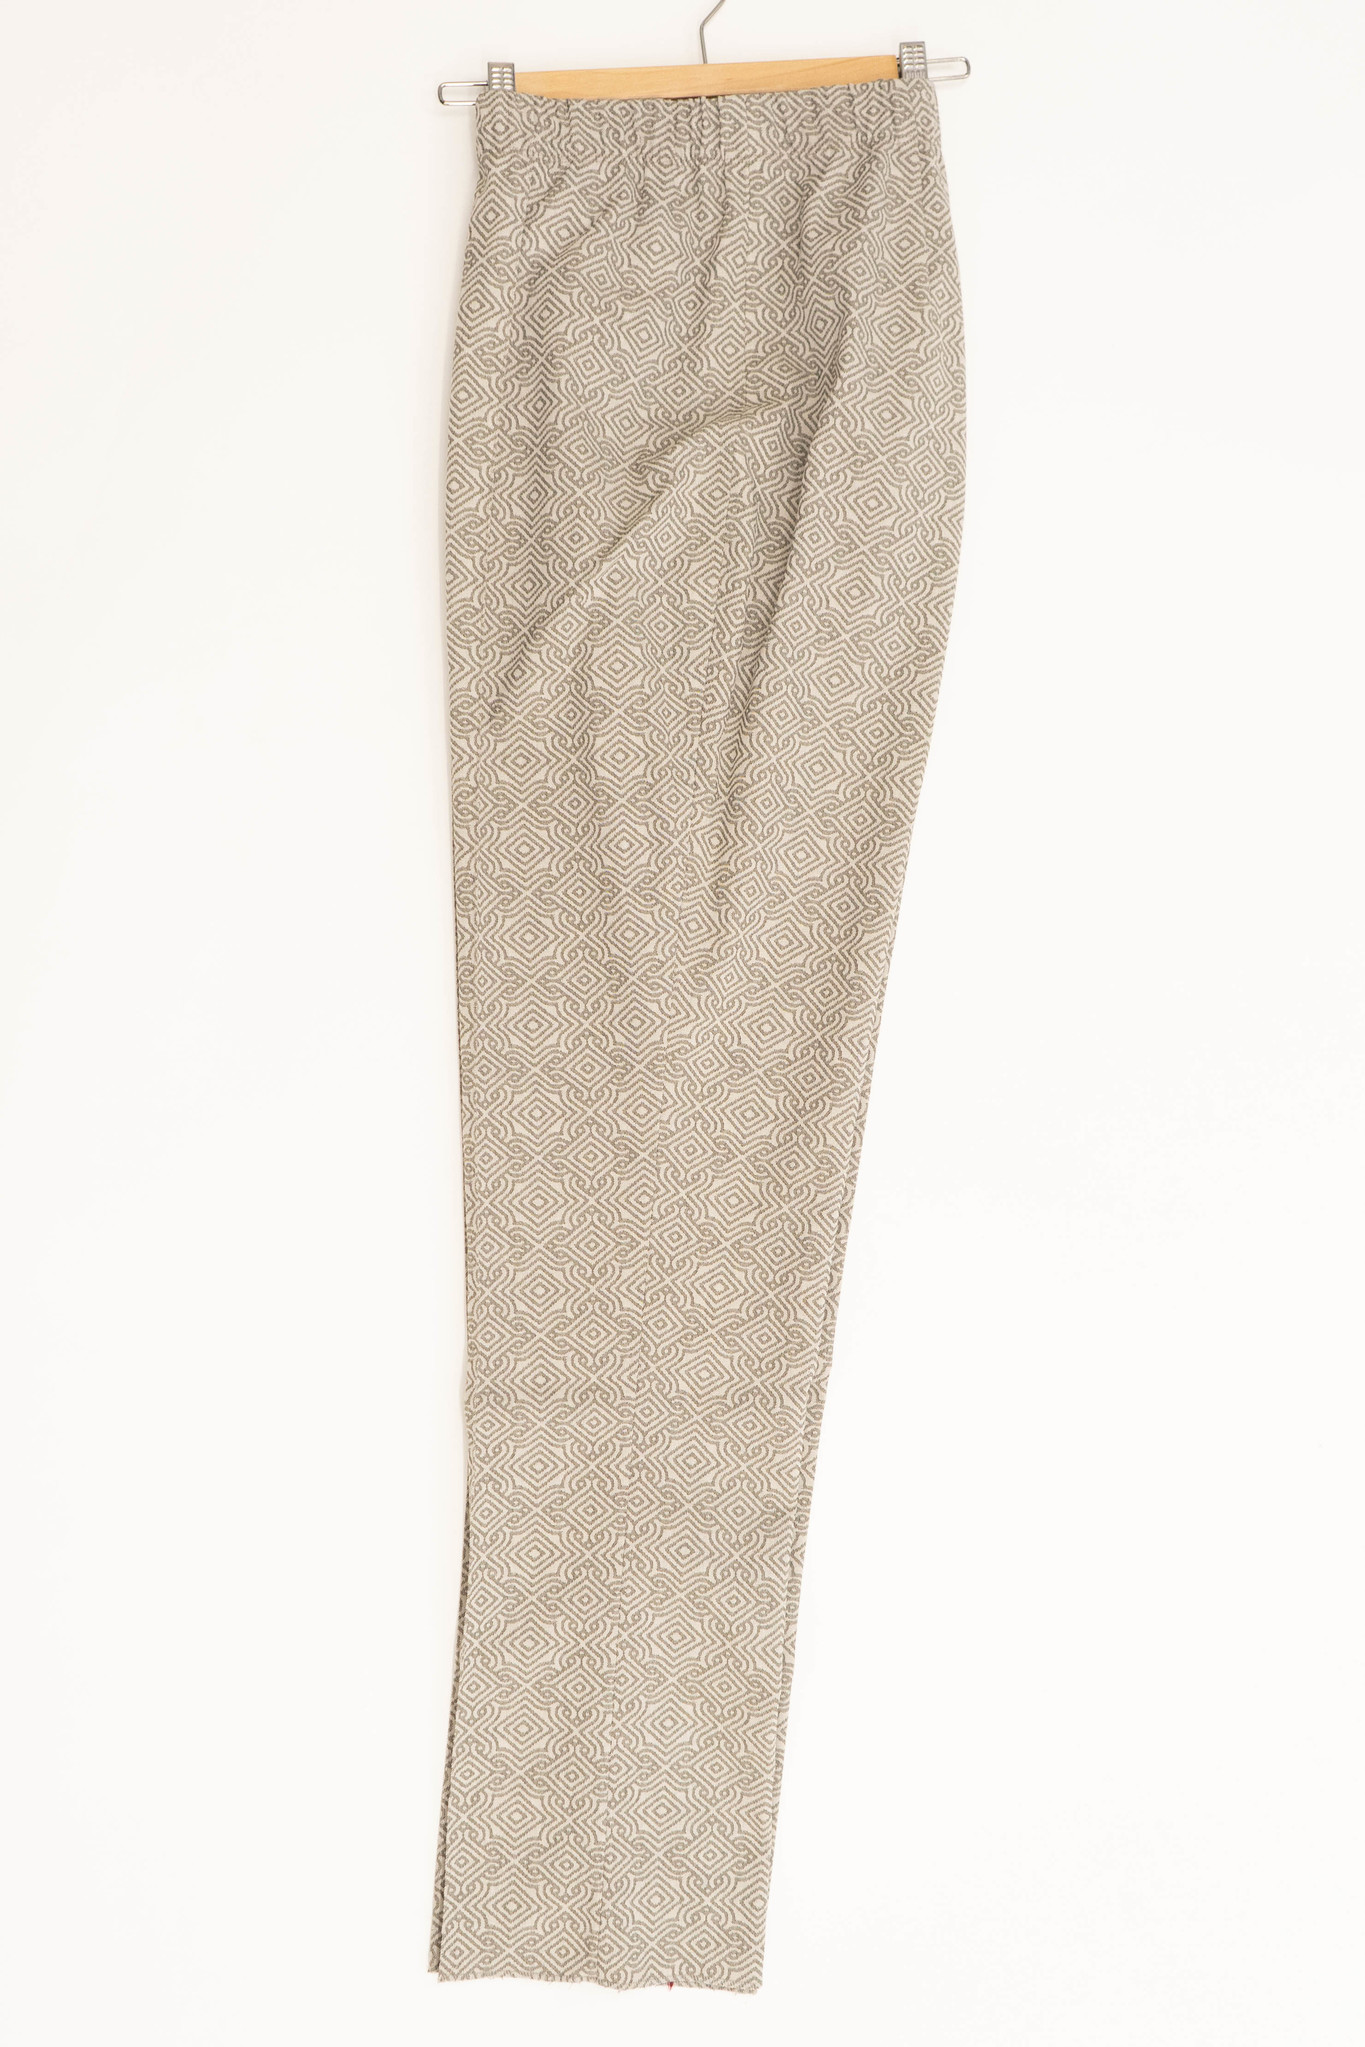 MOSAIC Trousers in Cotton stretch-2